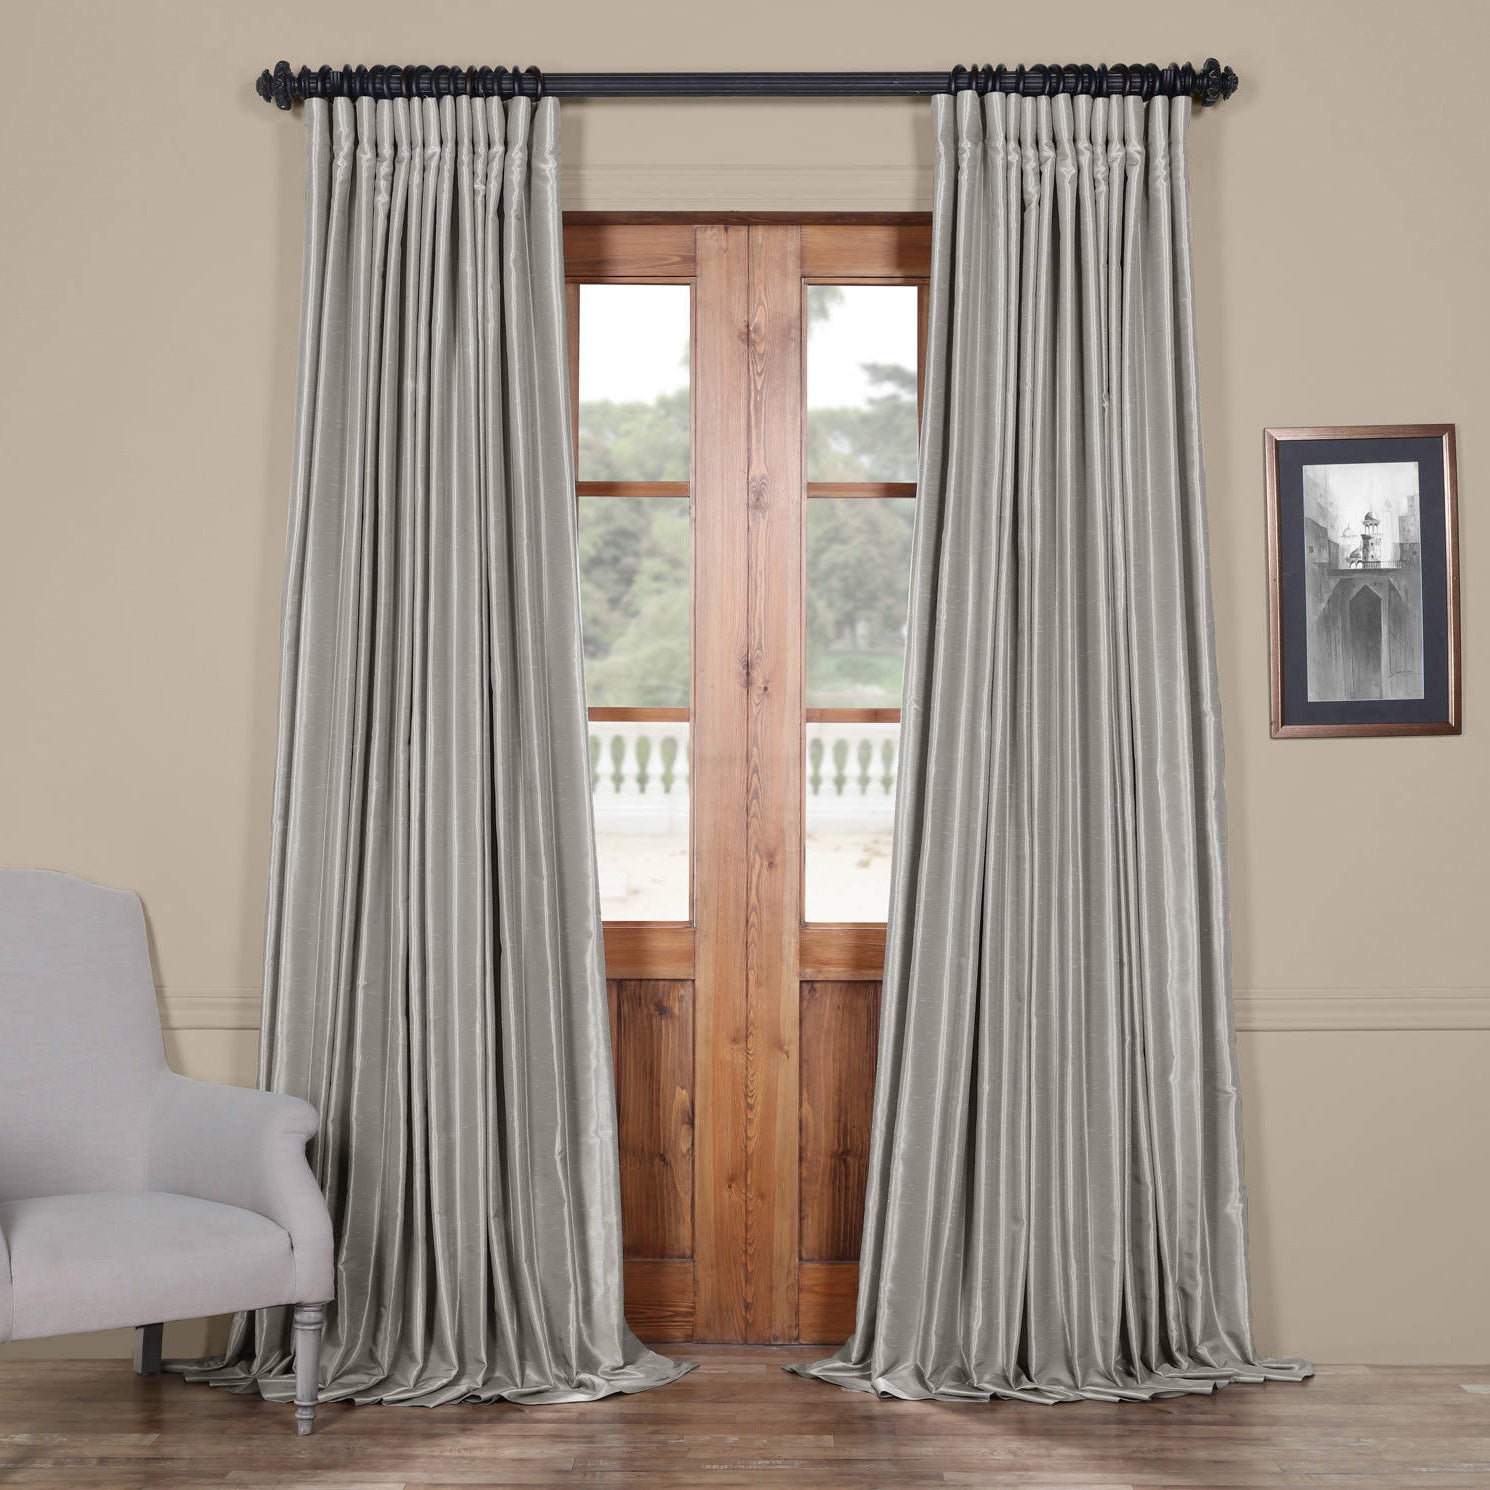 Exclusive Fabrics Faux Silk Extra Wide Blackout Single Curtain Panel Throughout Faux Silk Extra Wide Blackout Single Curtain Panels (View 3 of 20)